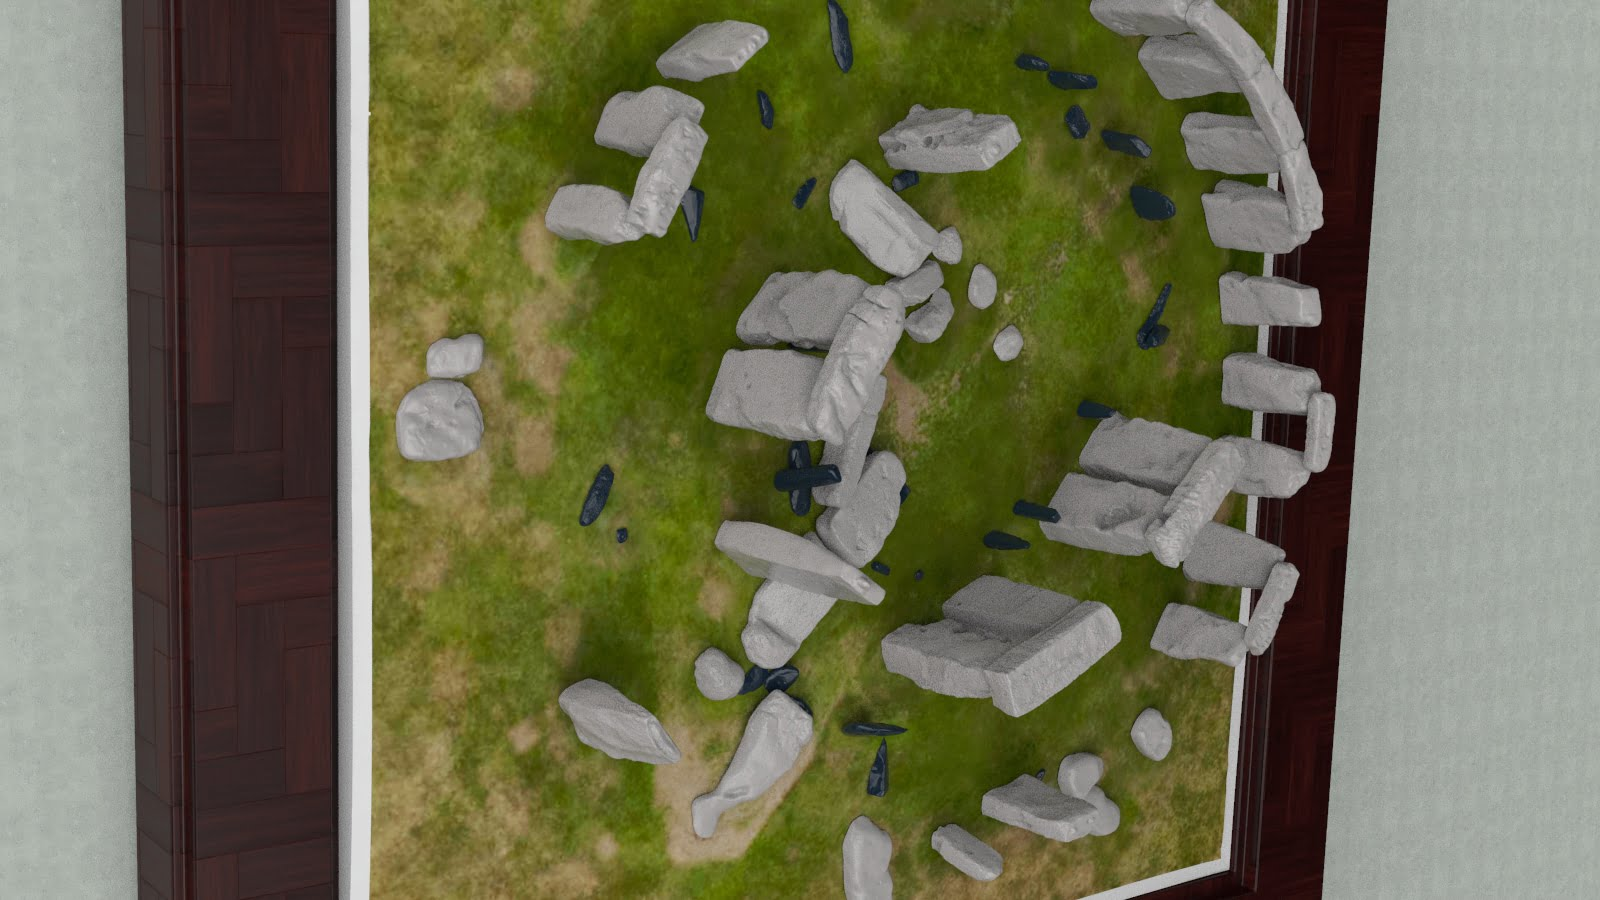 Buy Stonehenge Models: Framed Stonehenge monument model at 200th scale 195 x 195 mm square framed and hung on wall 002  - 200th scale pick n mix -